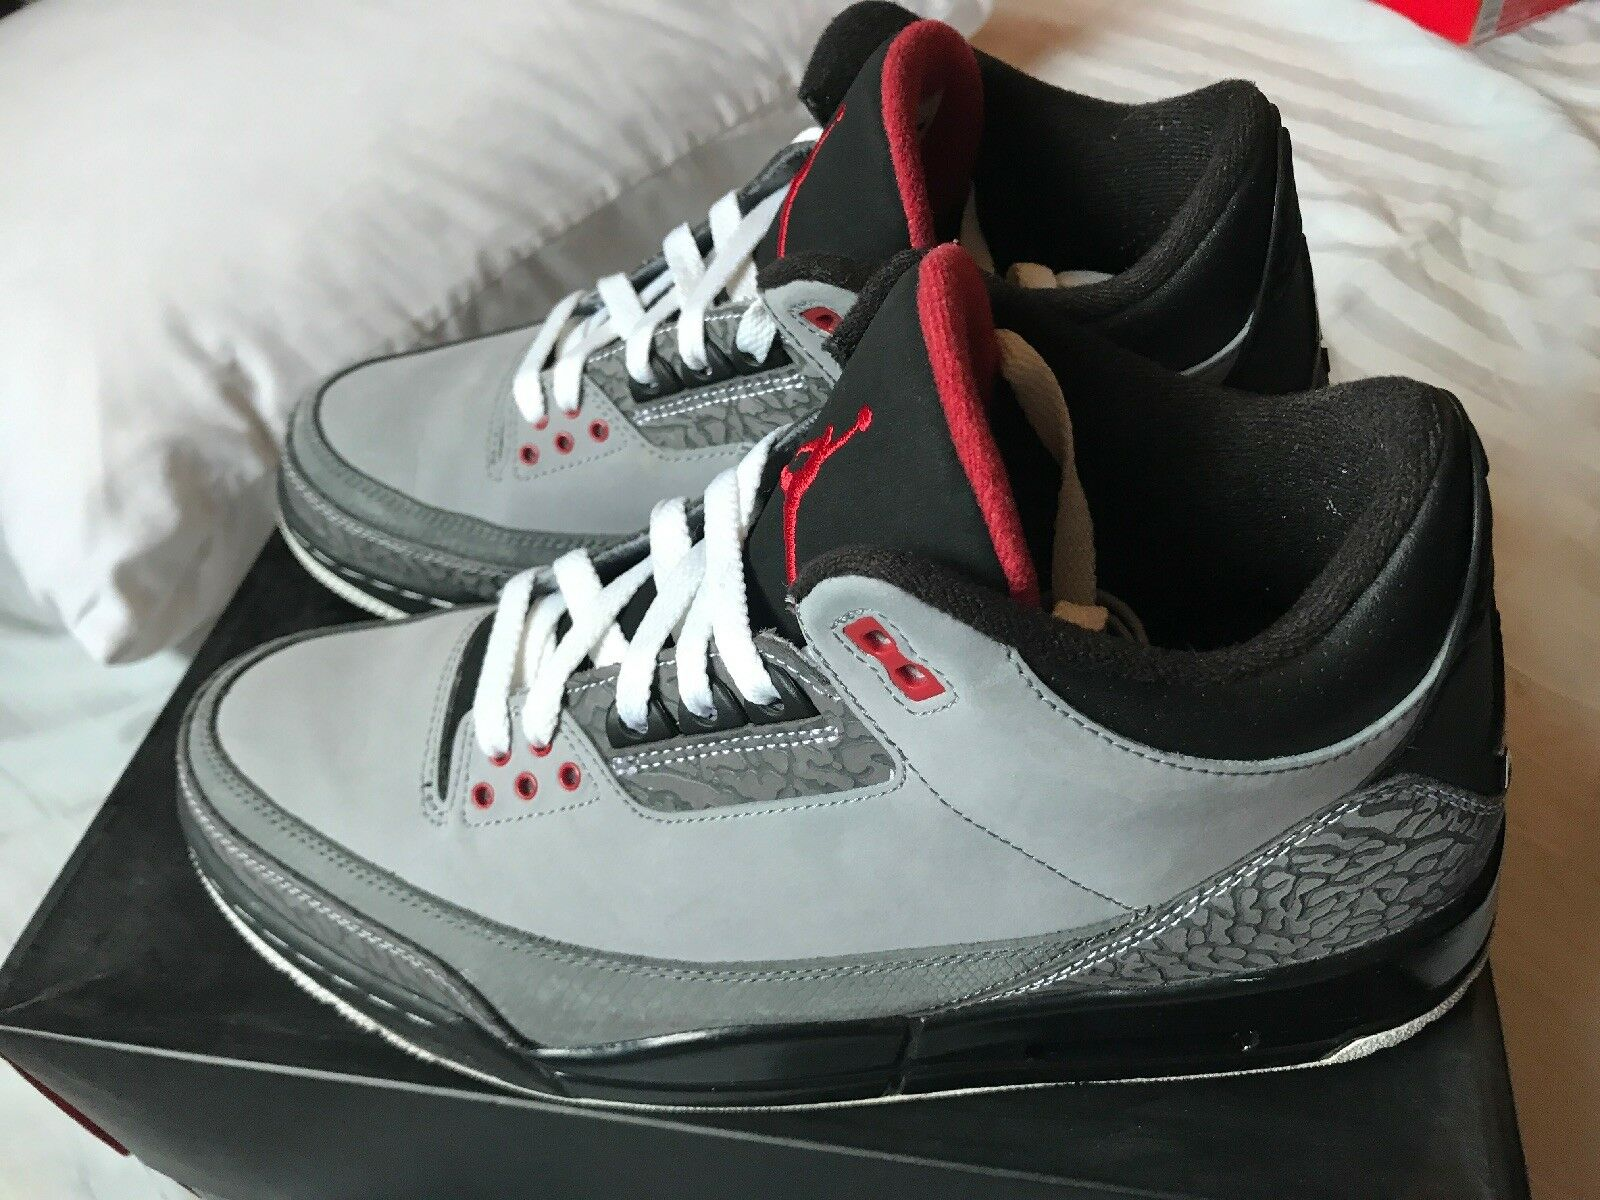 Air Jordan III 3 Retro Size 11 -Stealth JTH FREE THROW CEMENT-(Free 2day Ship)